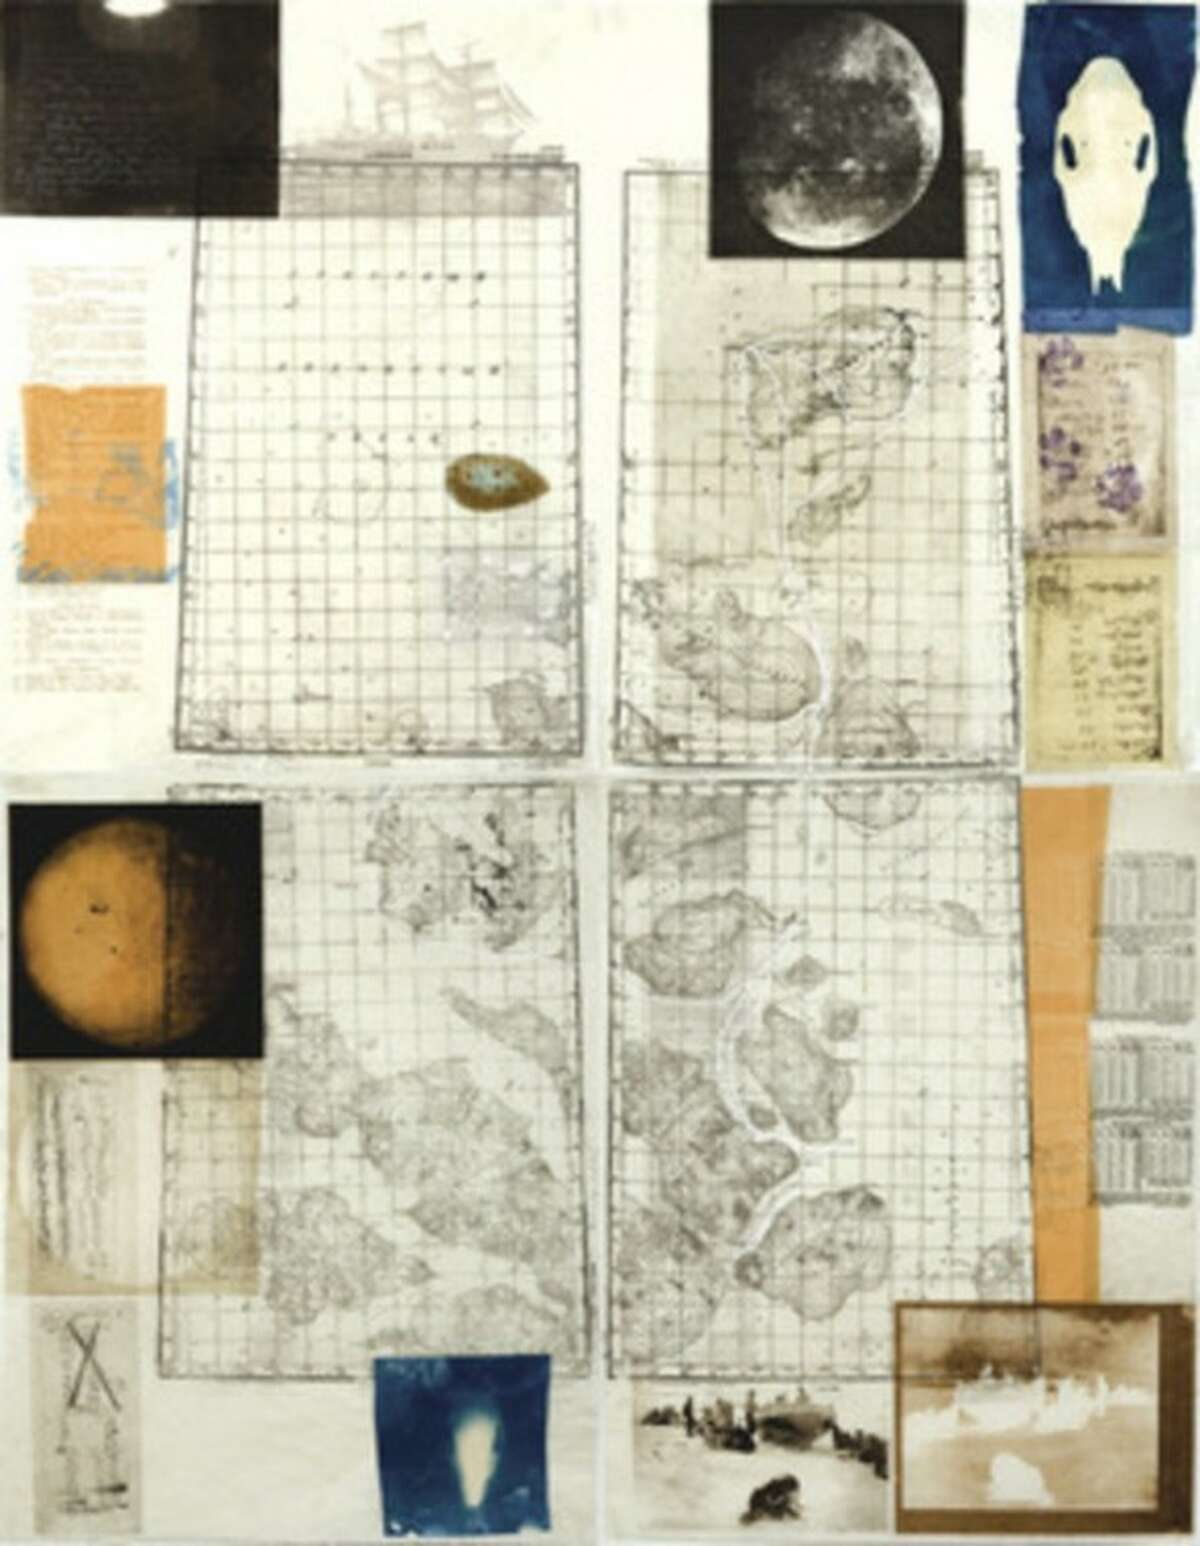 """Contributed photo On exhibit at the Stamford Museum & Nature Center is """"Nowhere on earth,"""" a 60 by 48-inch etching monoprint on Japanese paper done in 2009 by Heddi Vaughan Siebel."""